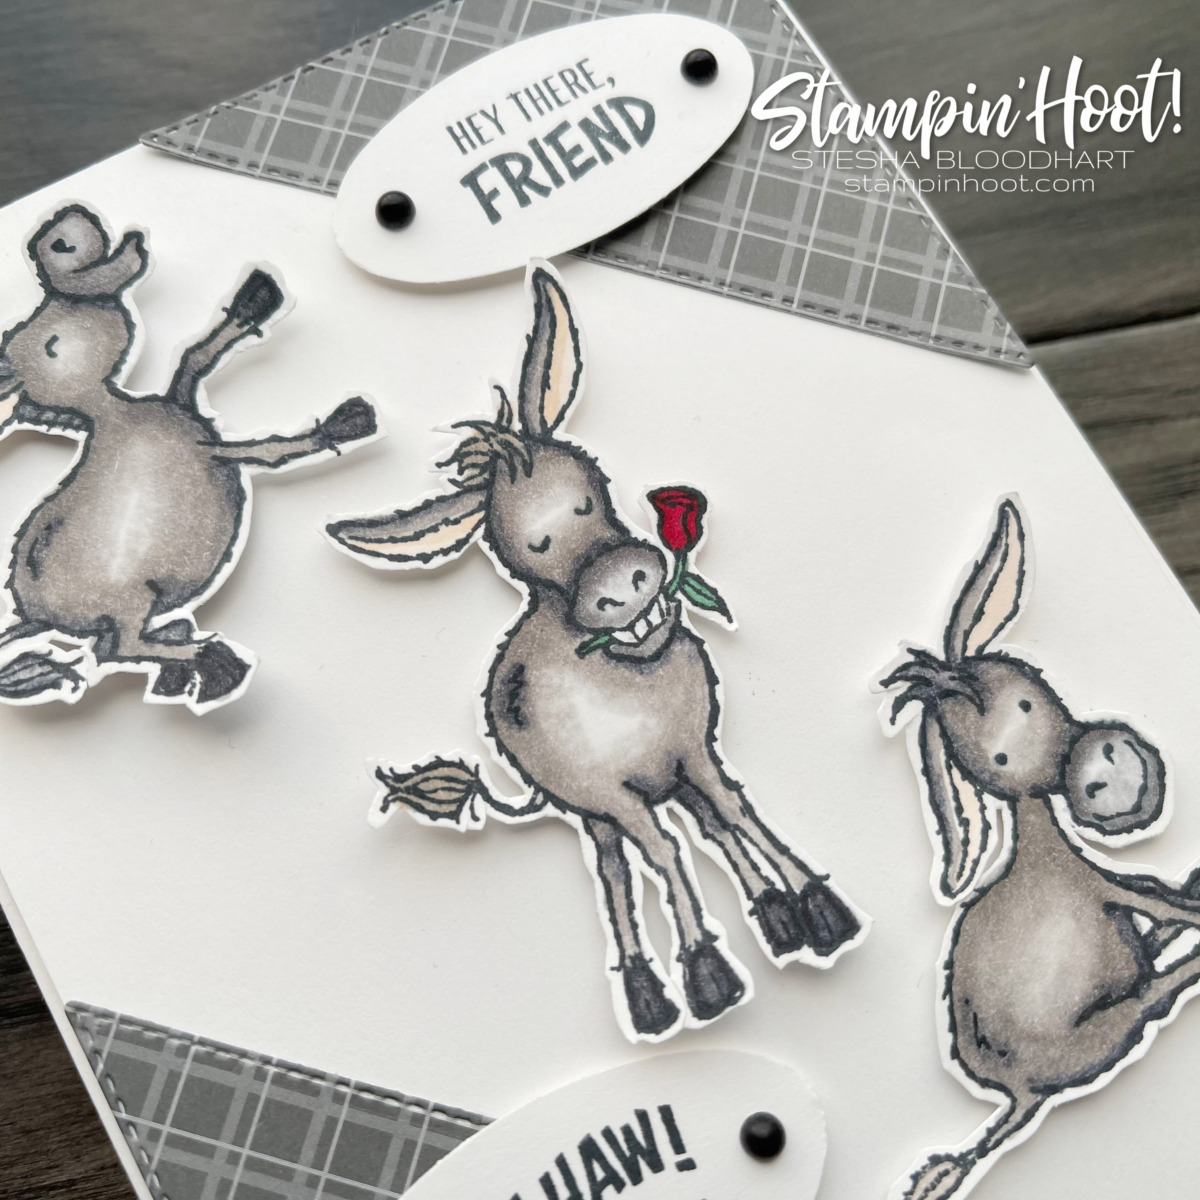 Darling Donkey Stamp Set by Stampin' Up! Free with $50 Purchase - Order Online with Stesha Bloodhart, Stampin' Hoot! #tgifc304